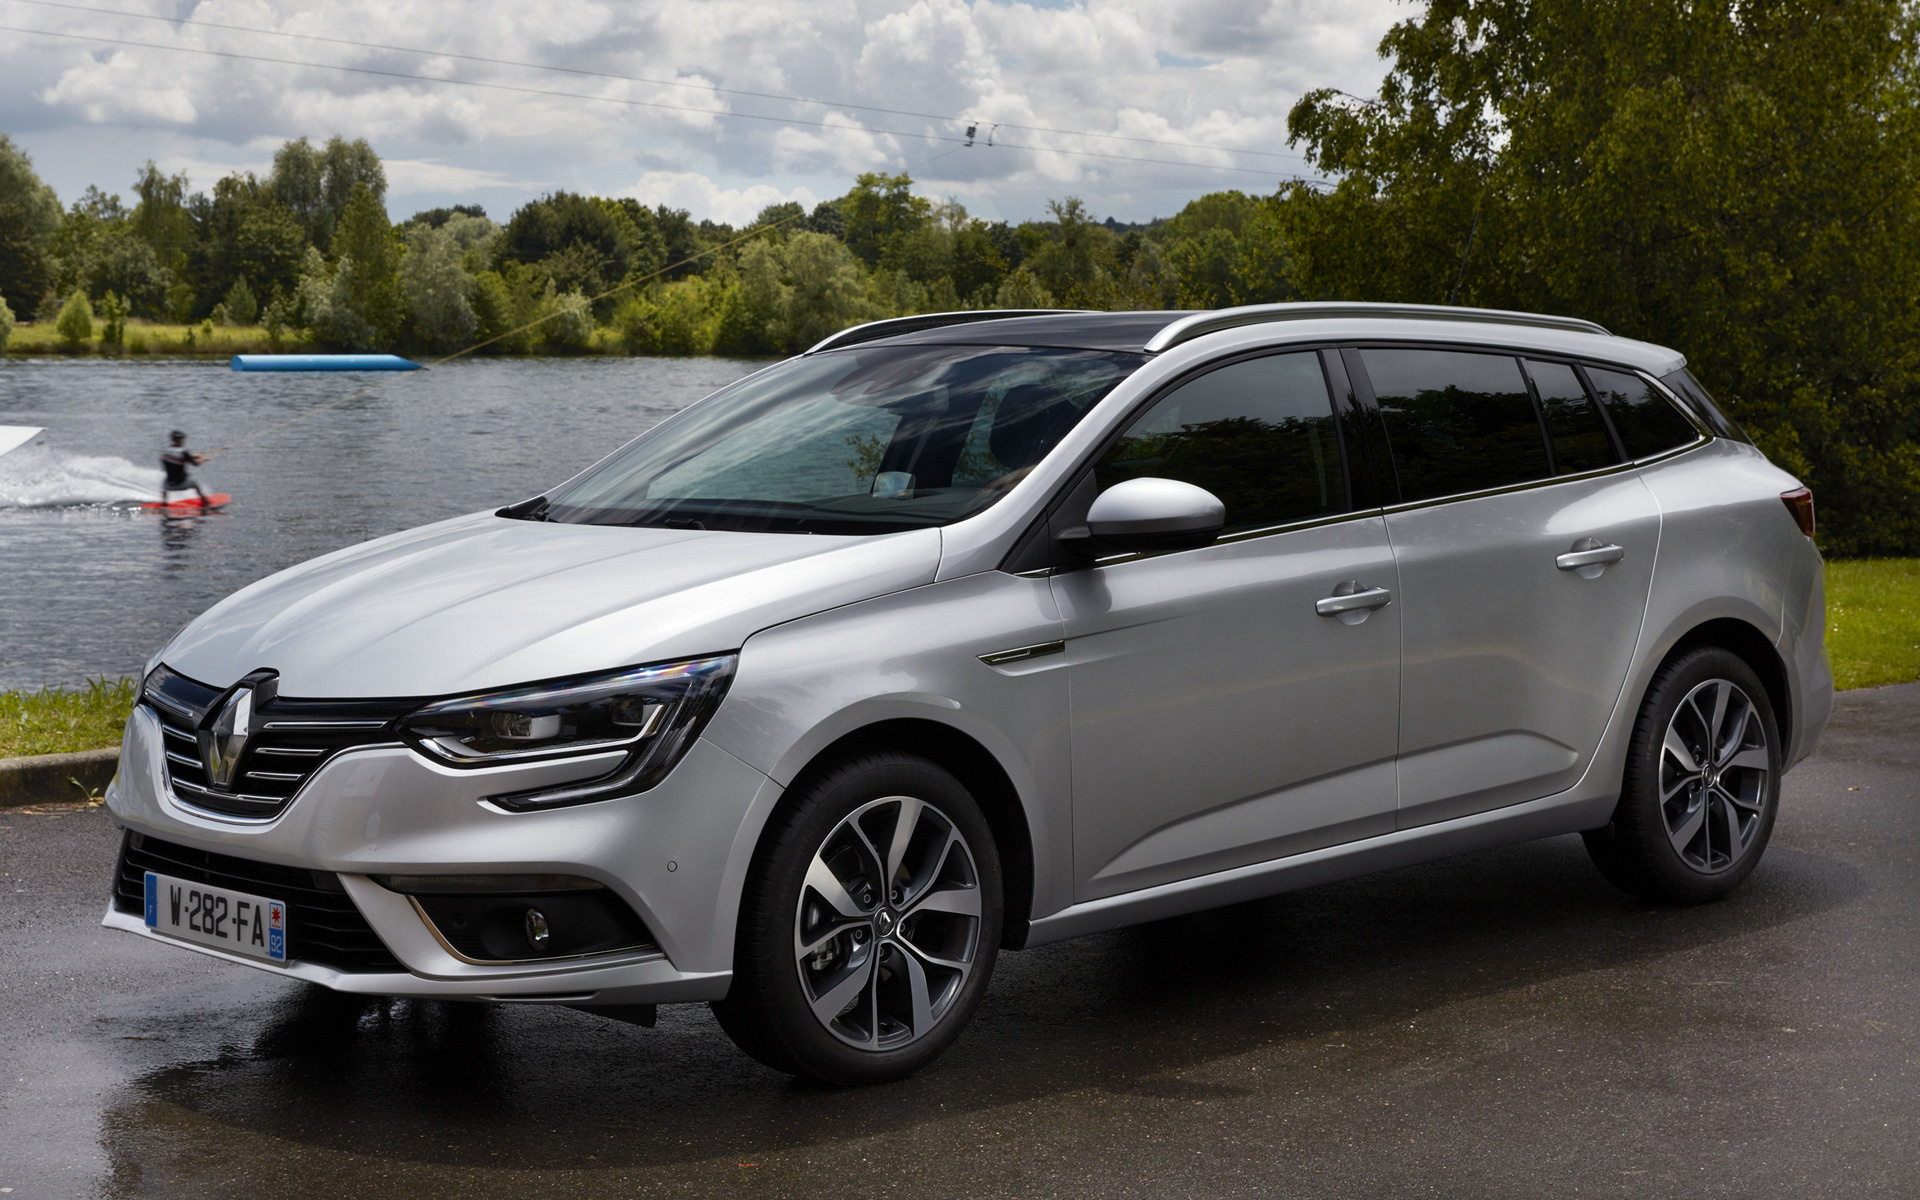 Acura Of Reno >> 2016 Renault Megane Estate - Wallpapers and HD Images | Car Pixel